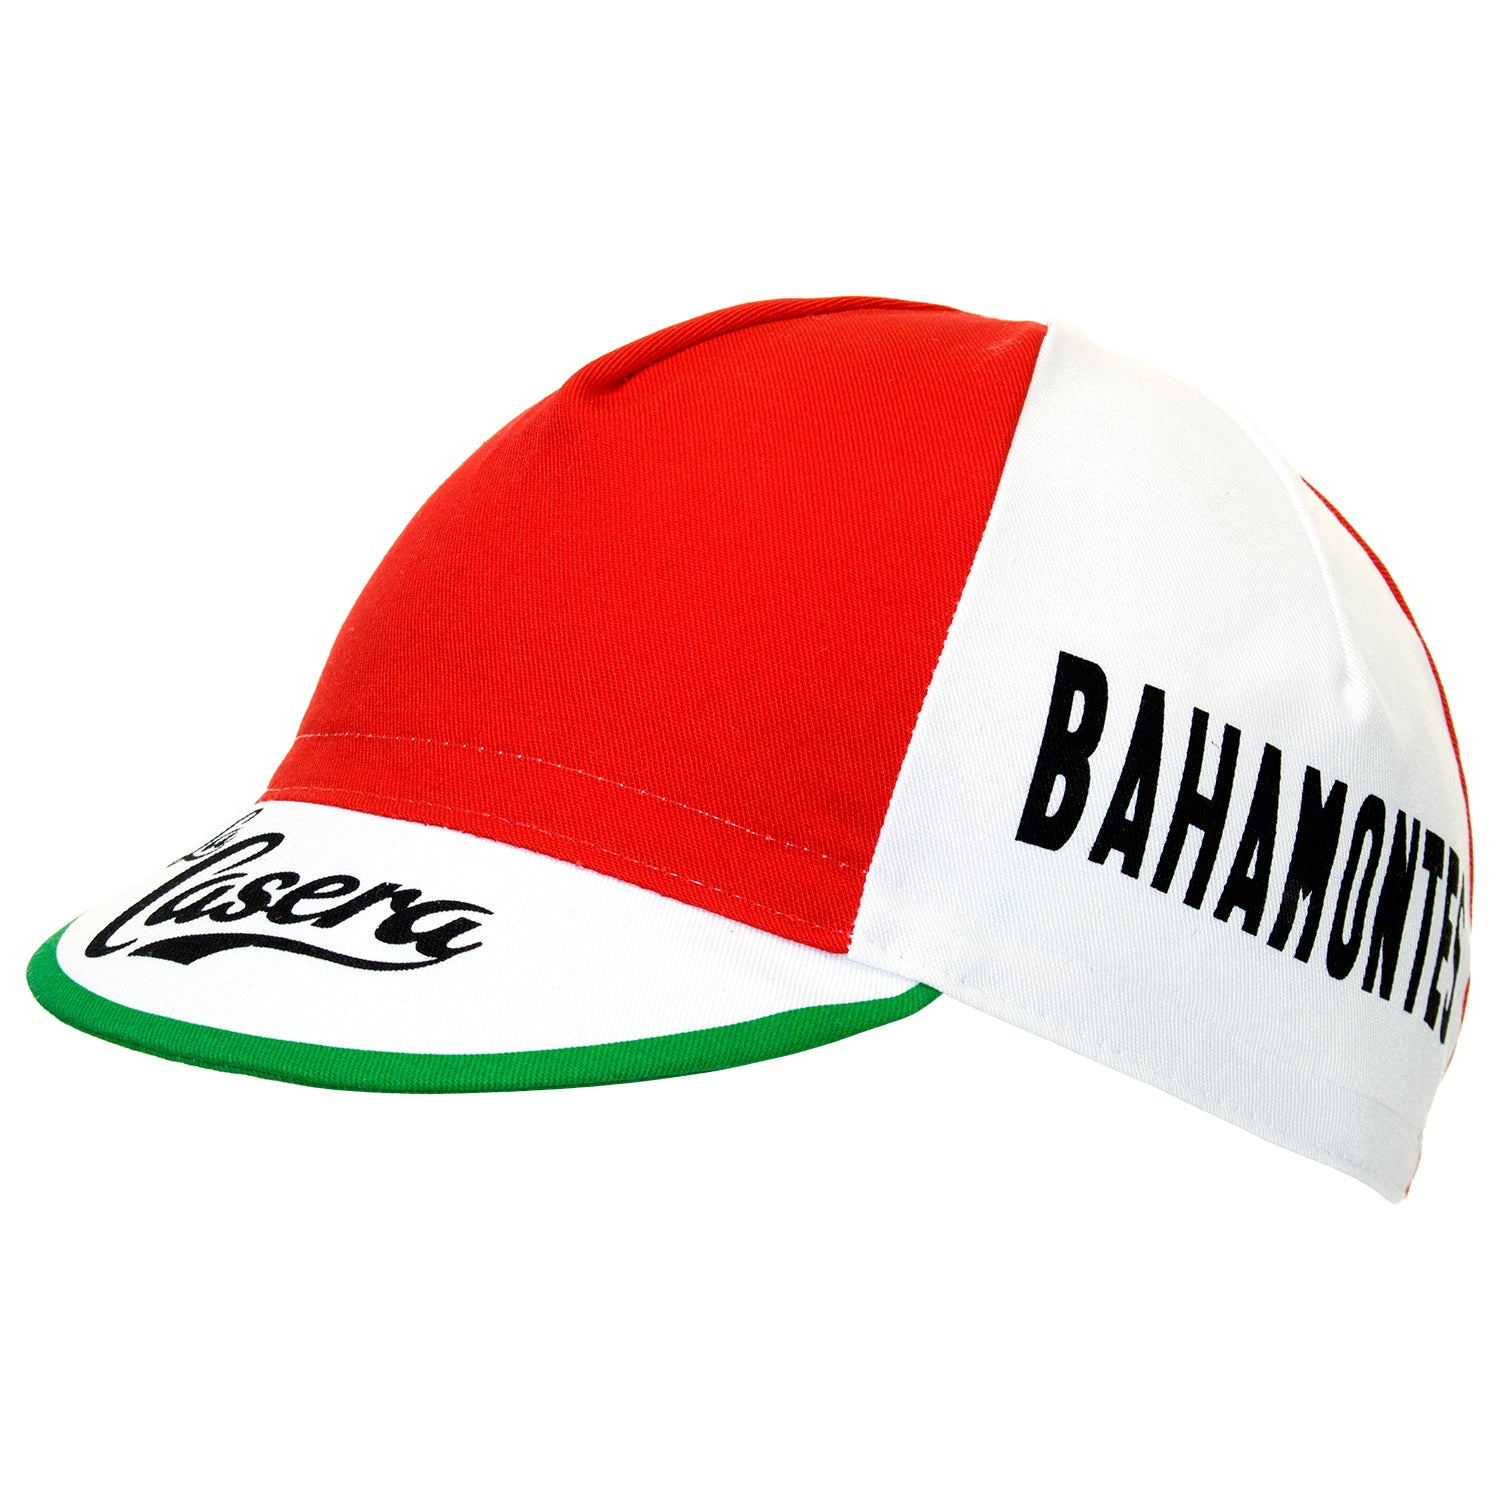 La Casera/Bahamontes Retro Cotton Cycling Cap